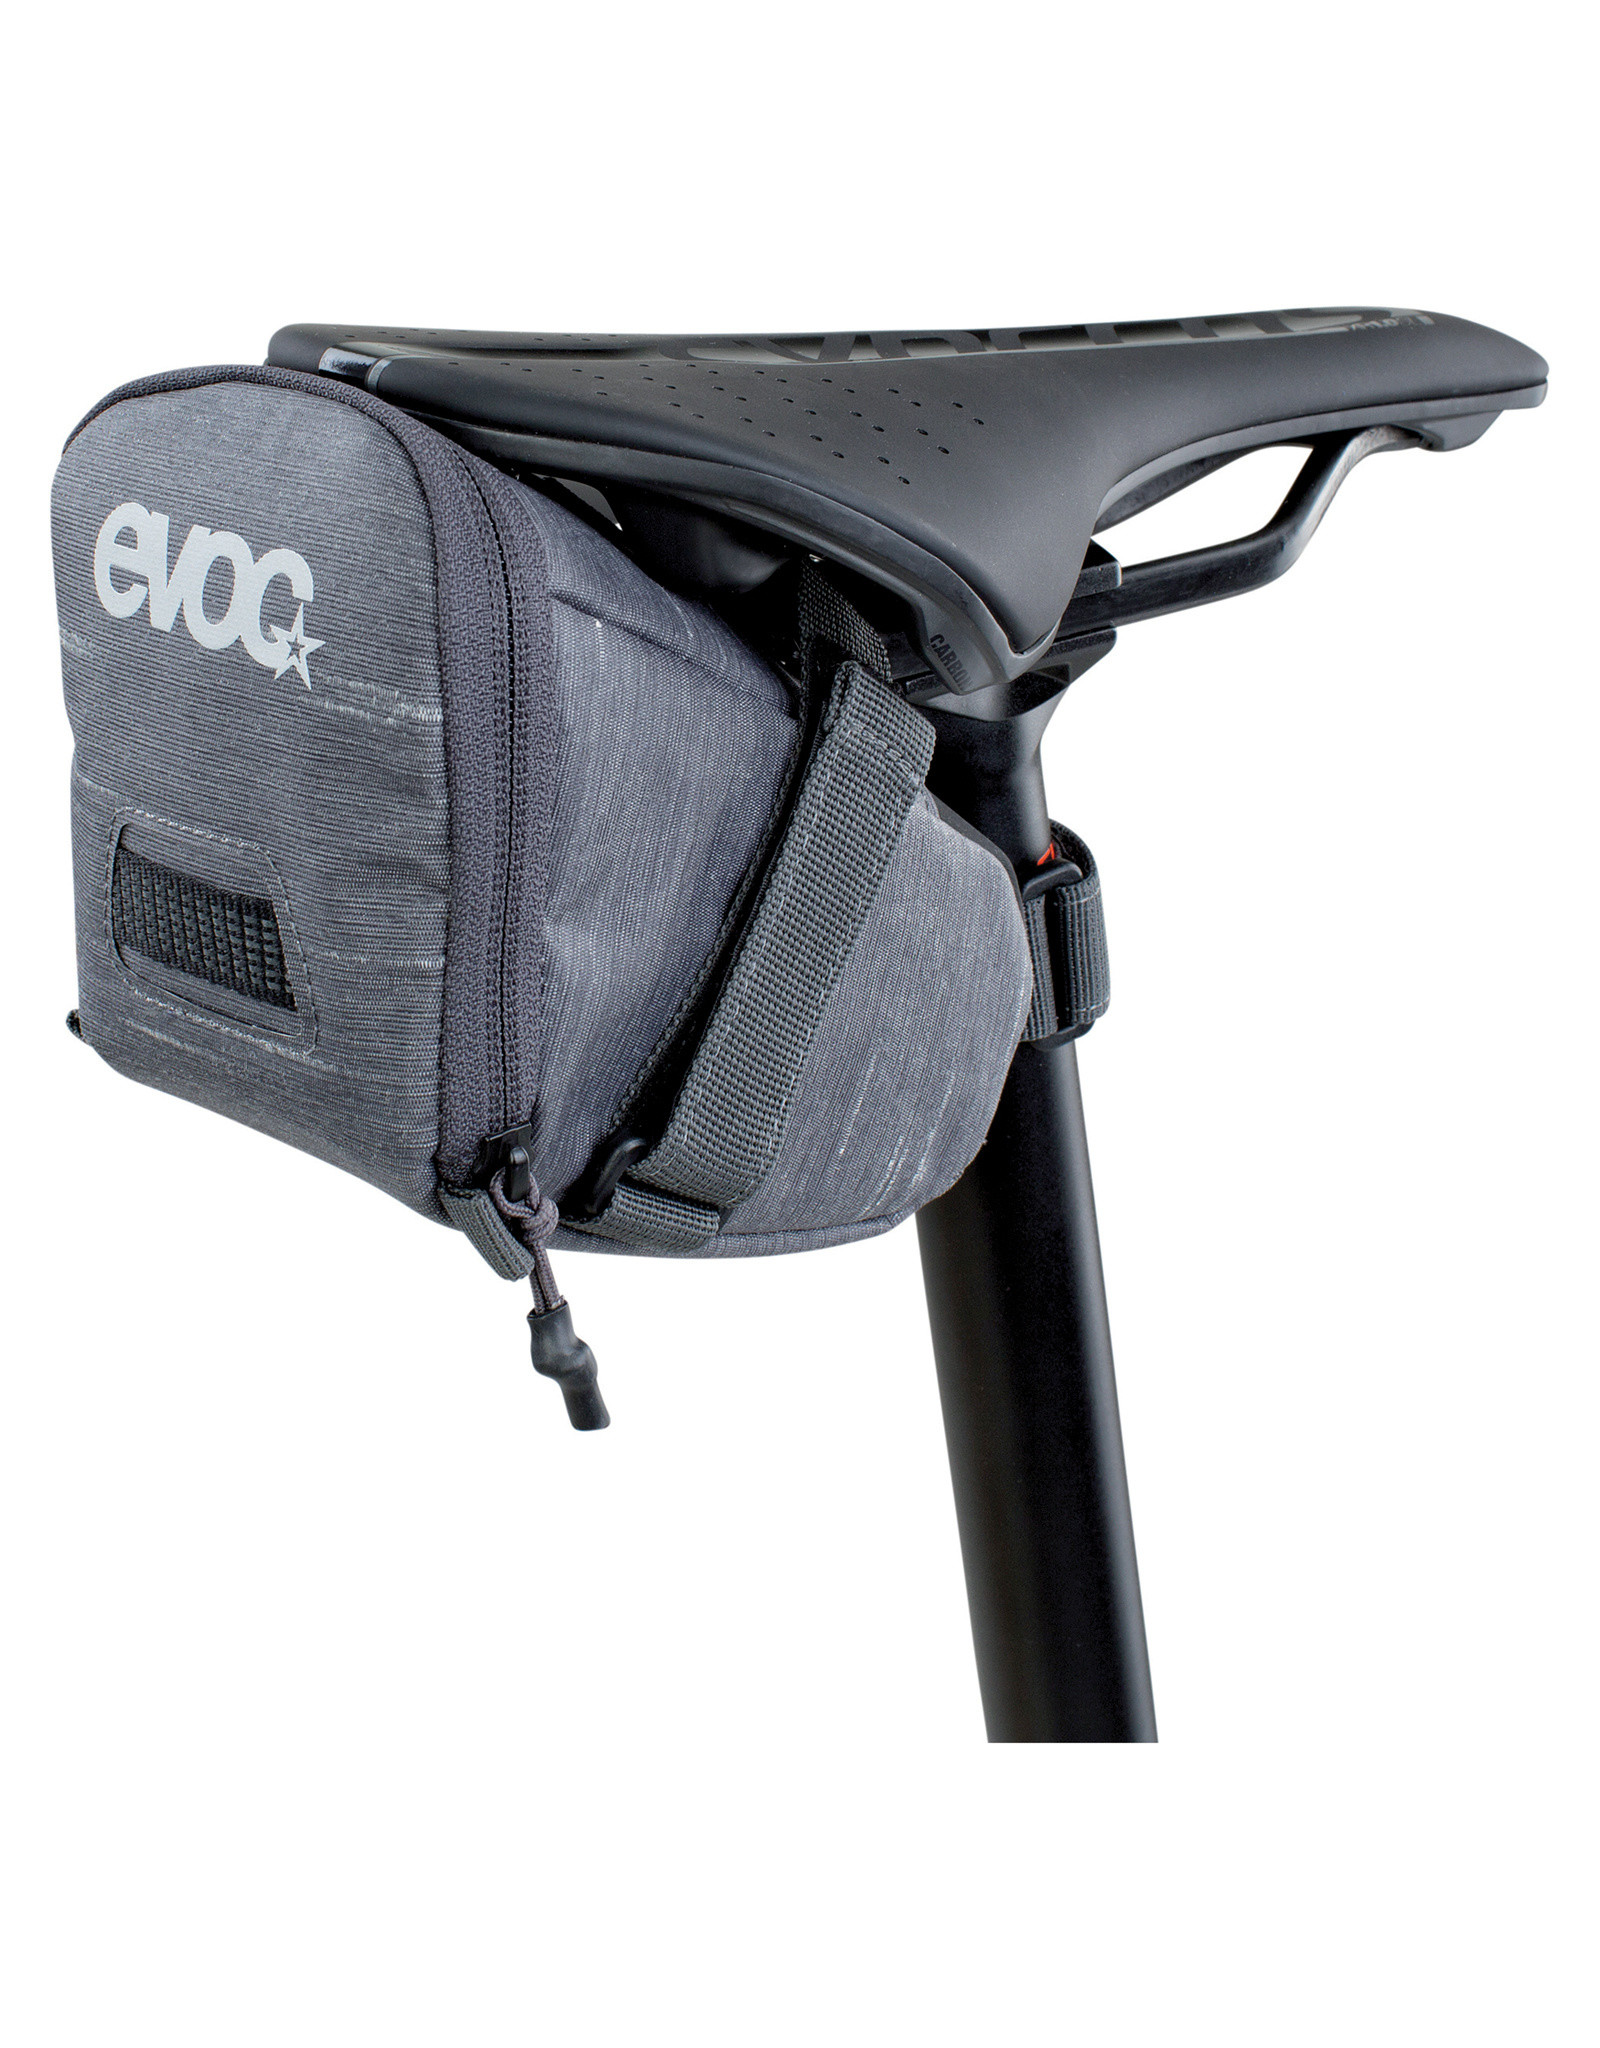 EVOC EVOC, Seat Bag Tour L, Sac de selle, 1L, Gris